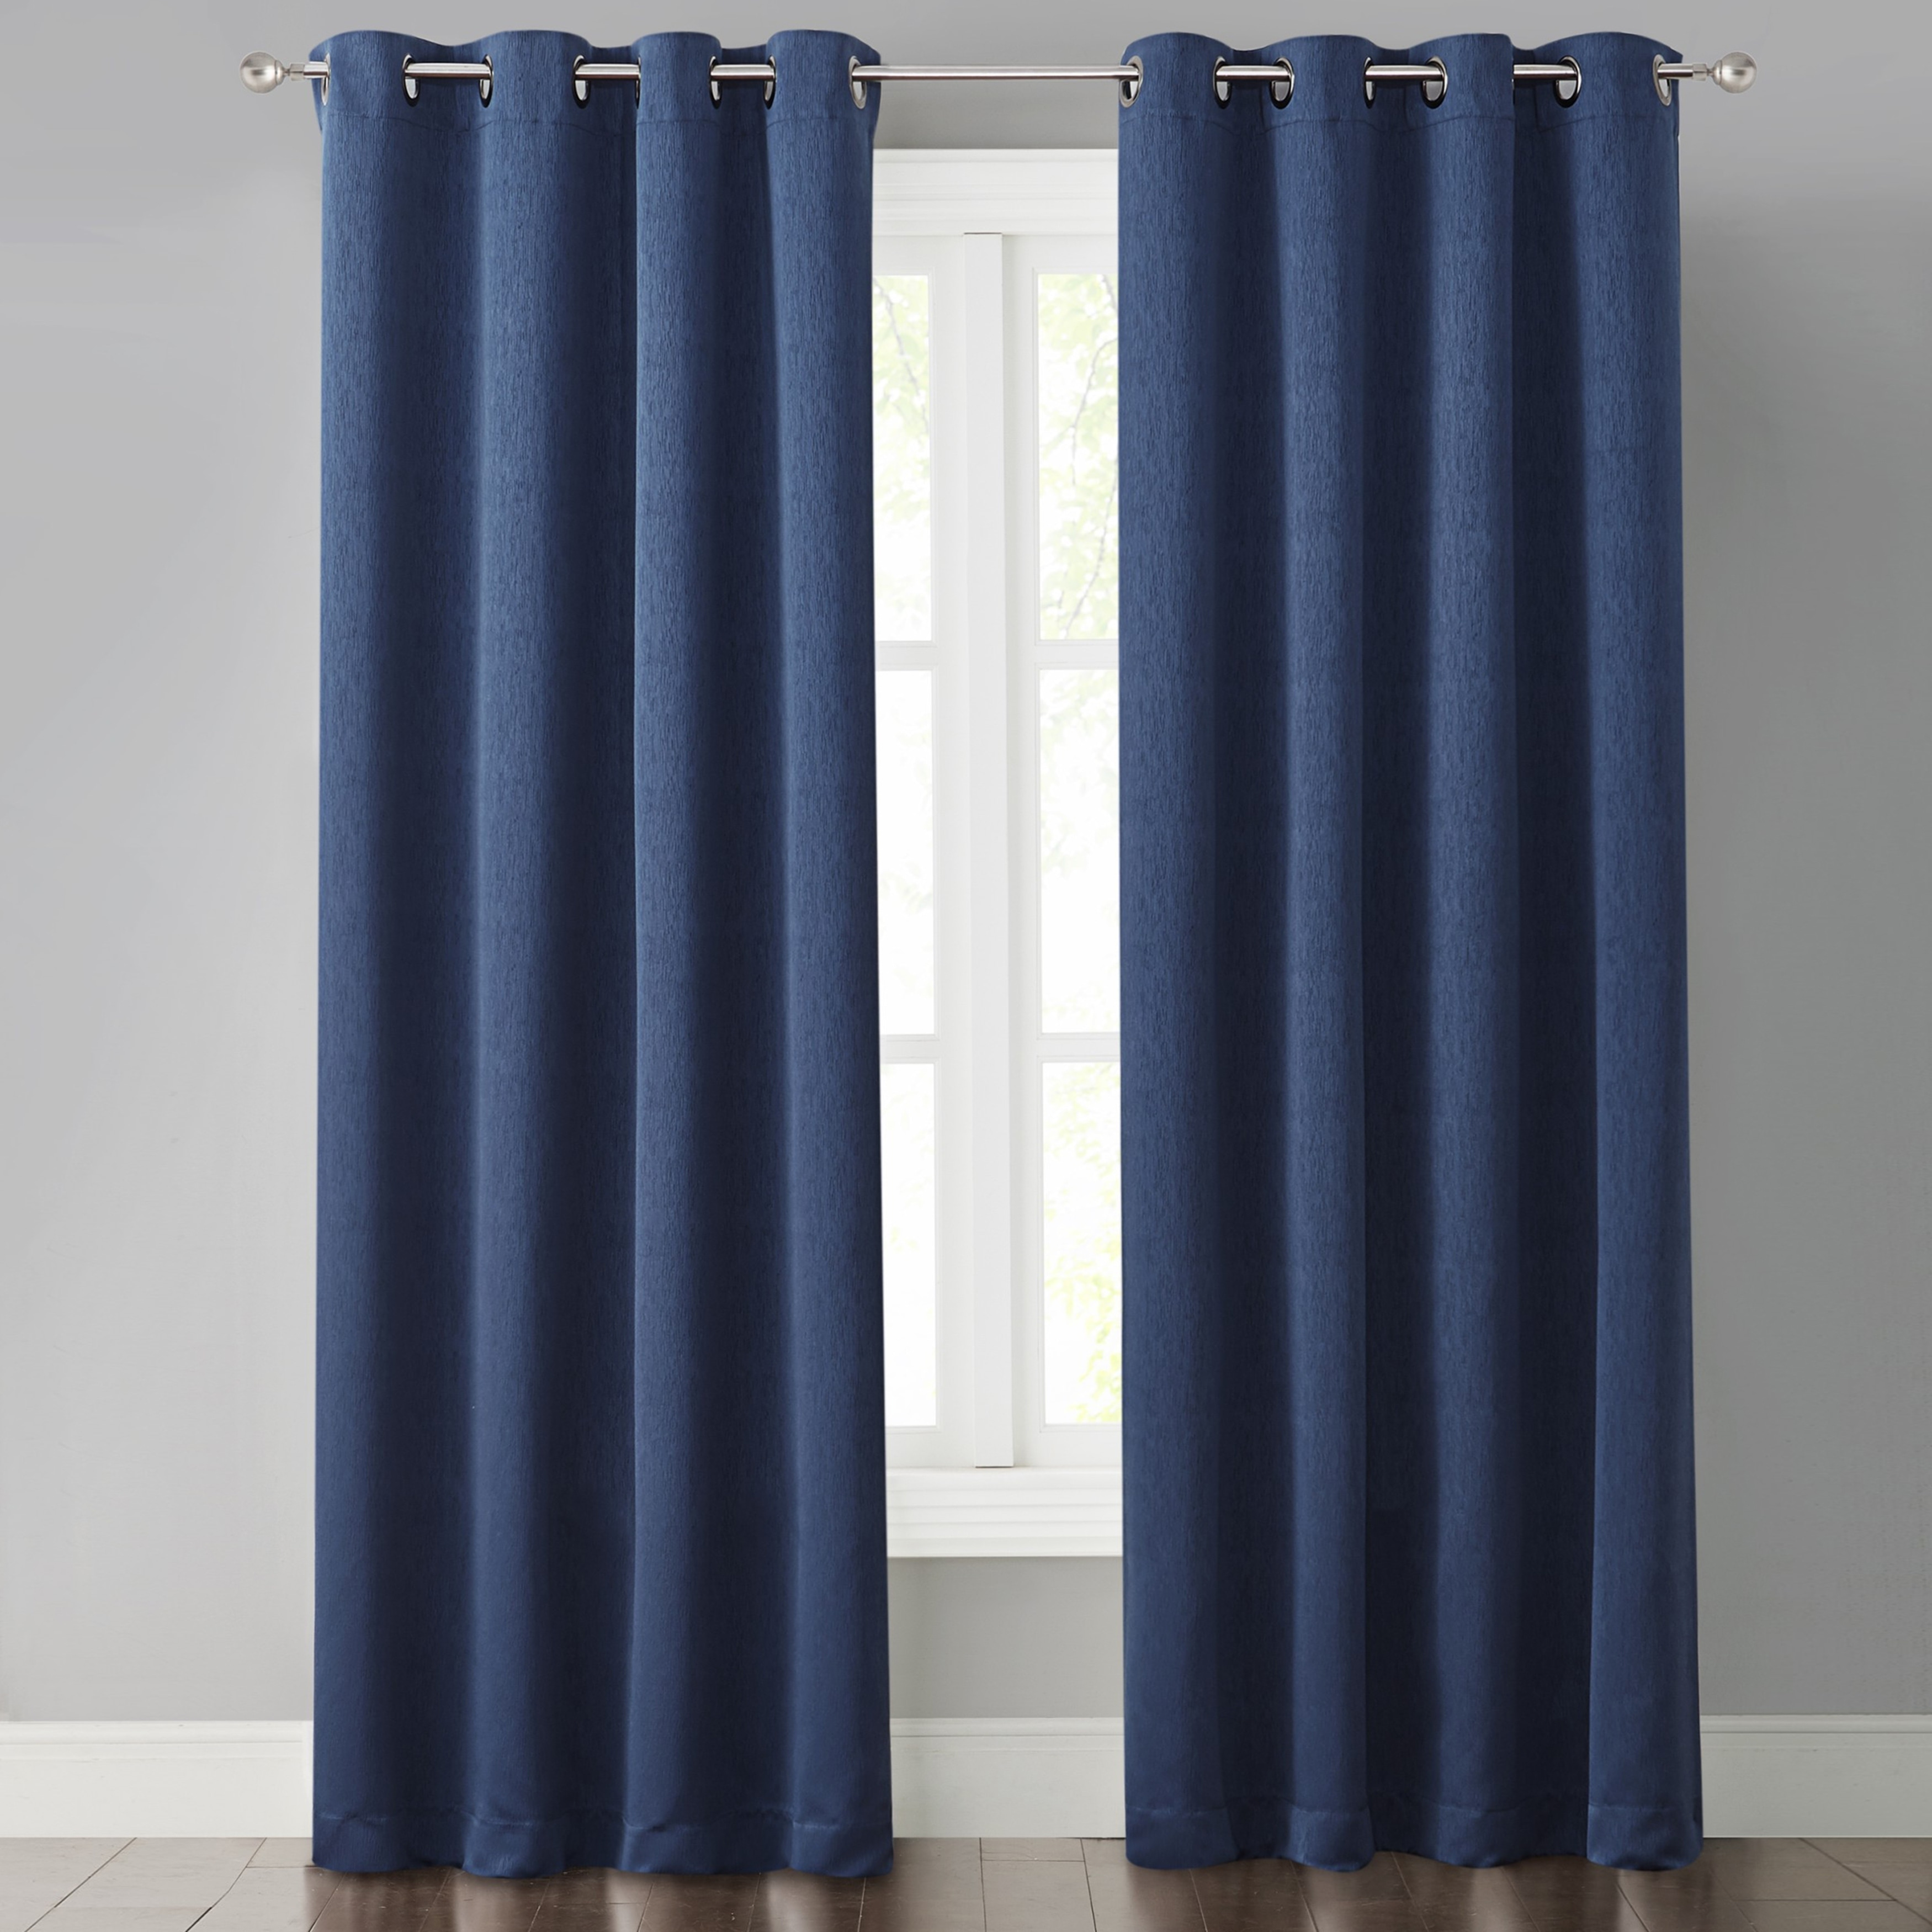 Dark Blue And Grey Curtains Foster Dark Blue Light Blocking Panel Curtain